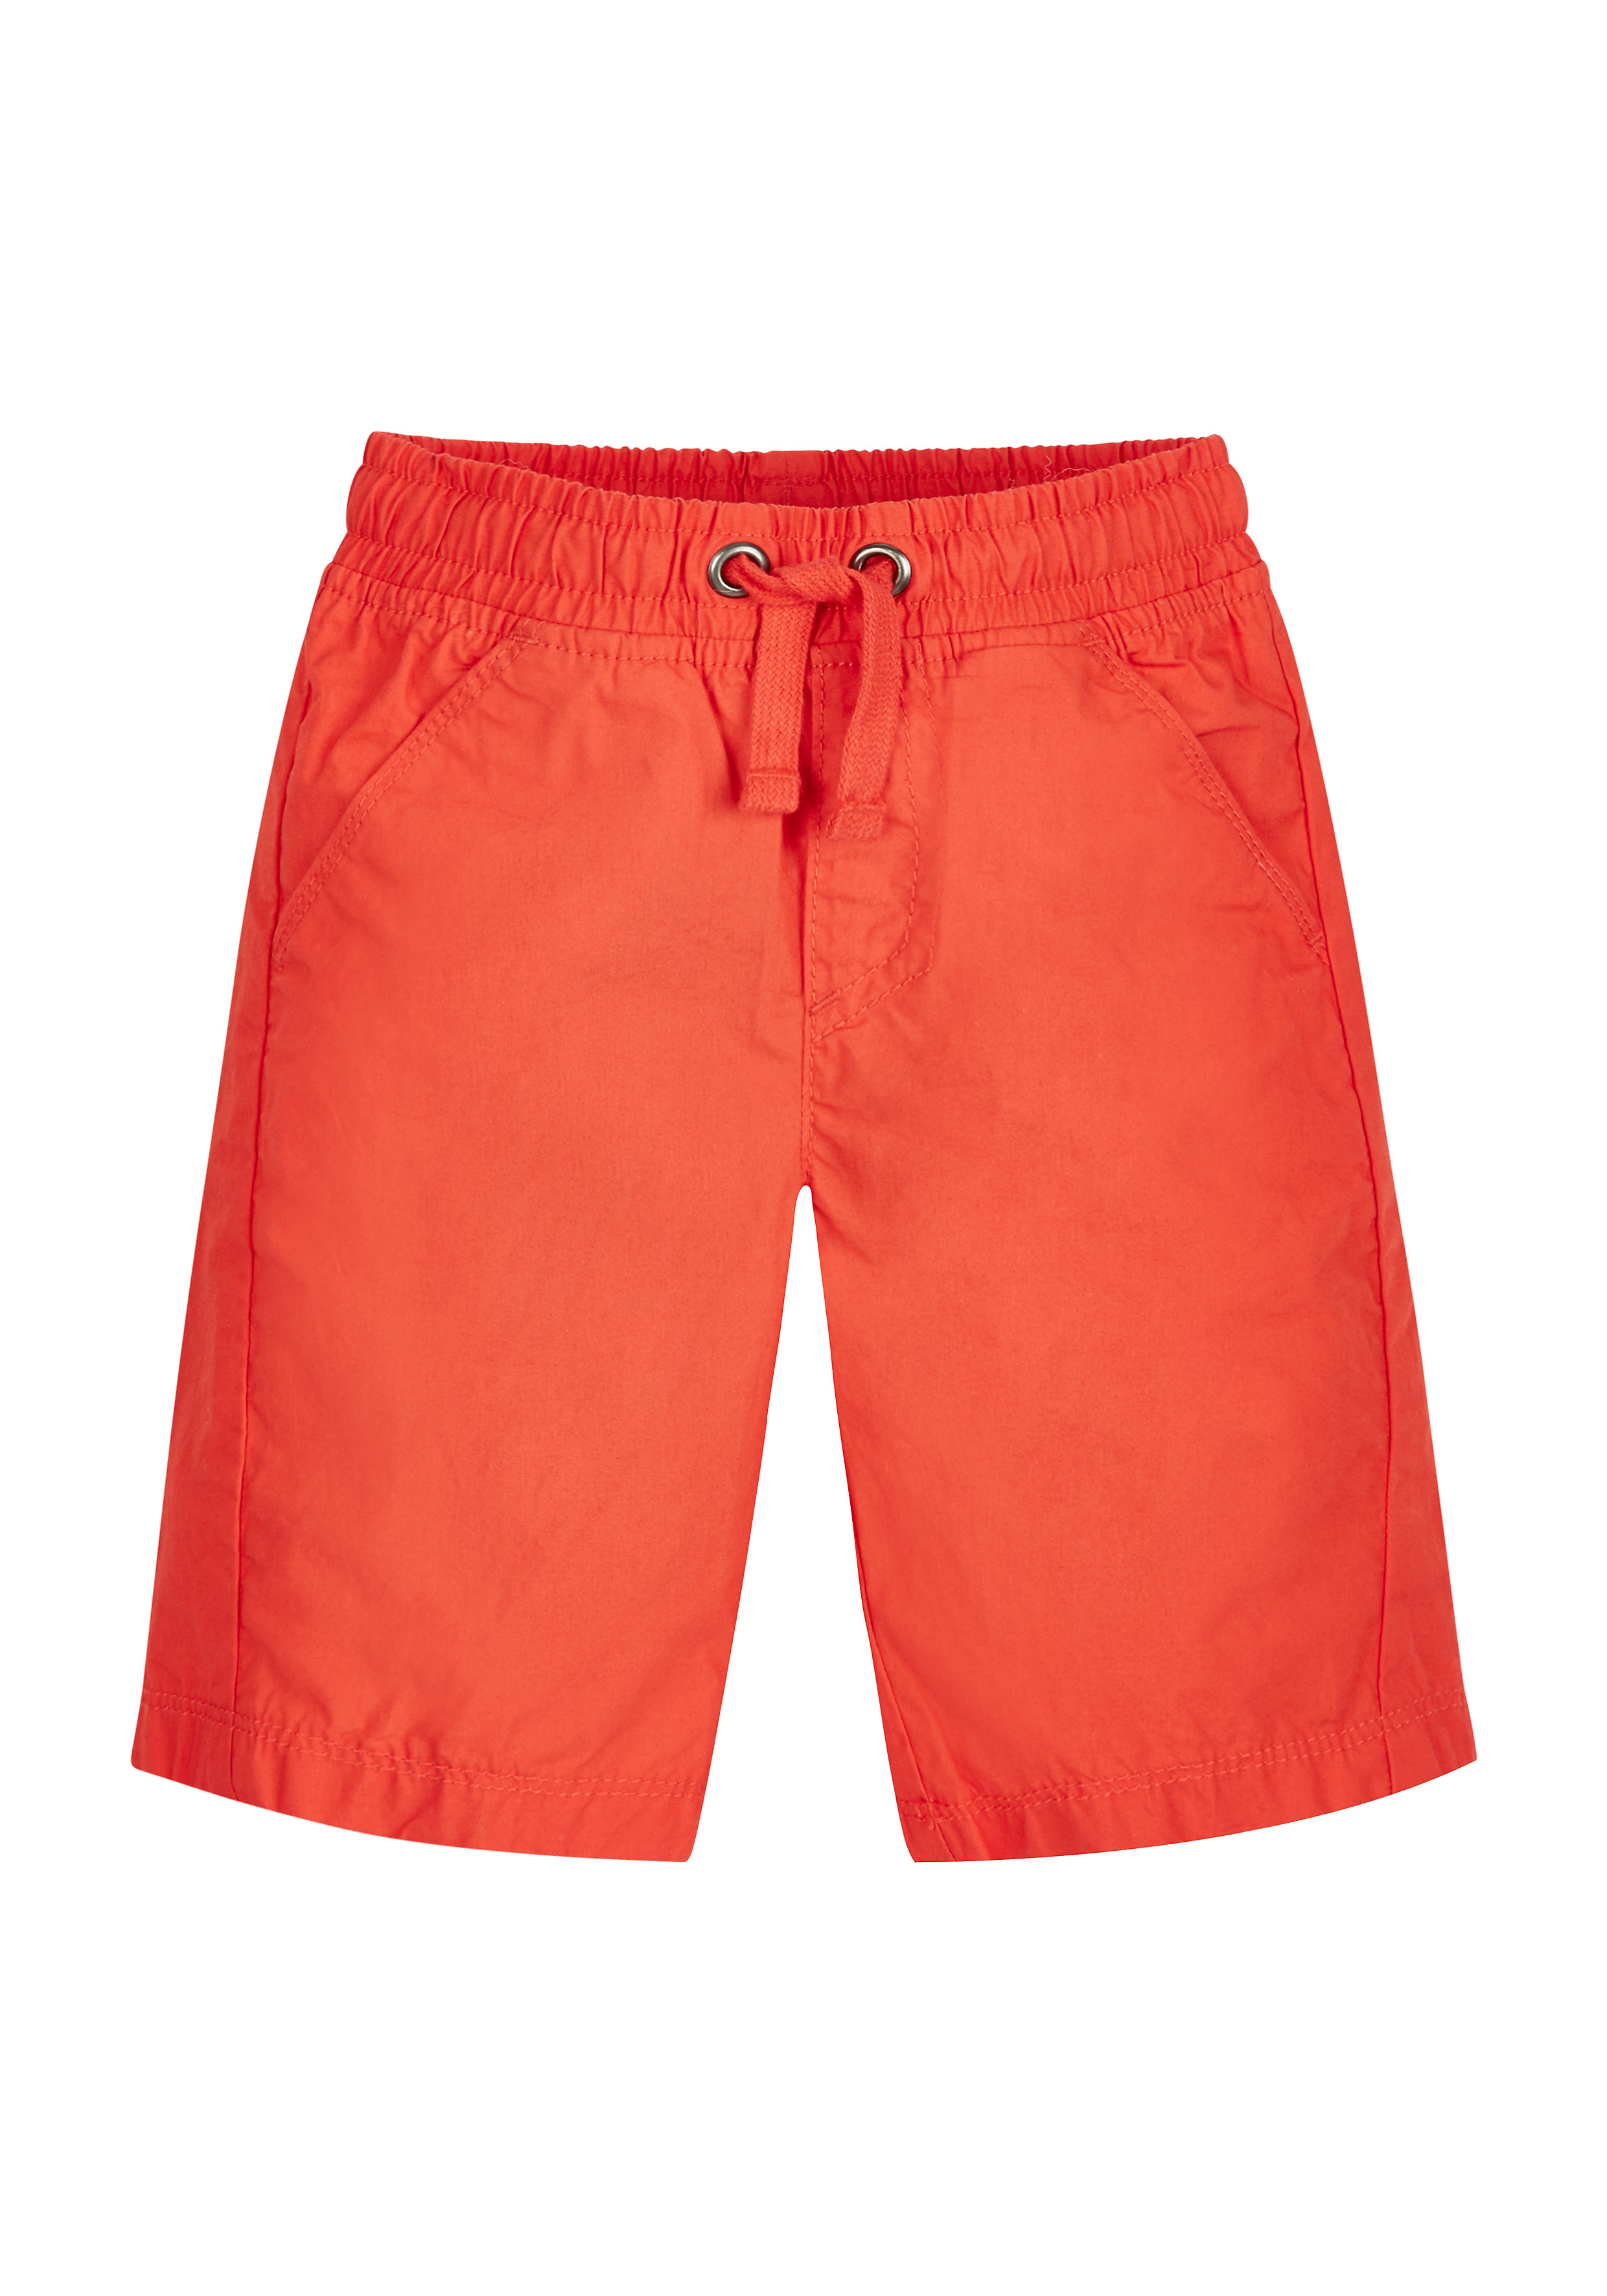 Mothercare   Boys Red Shorts - Red